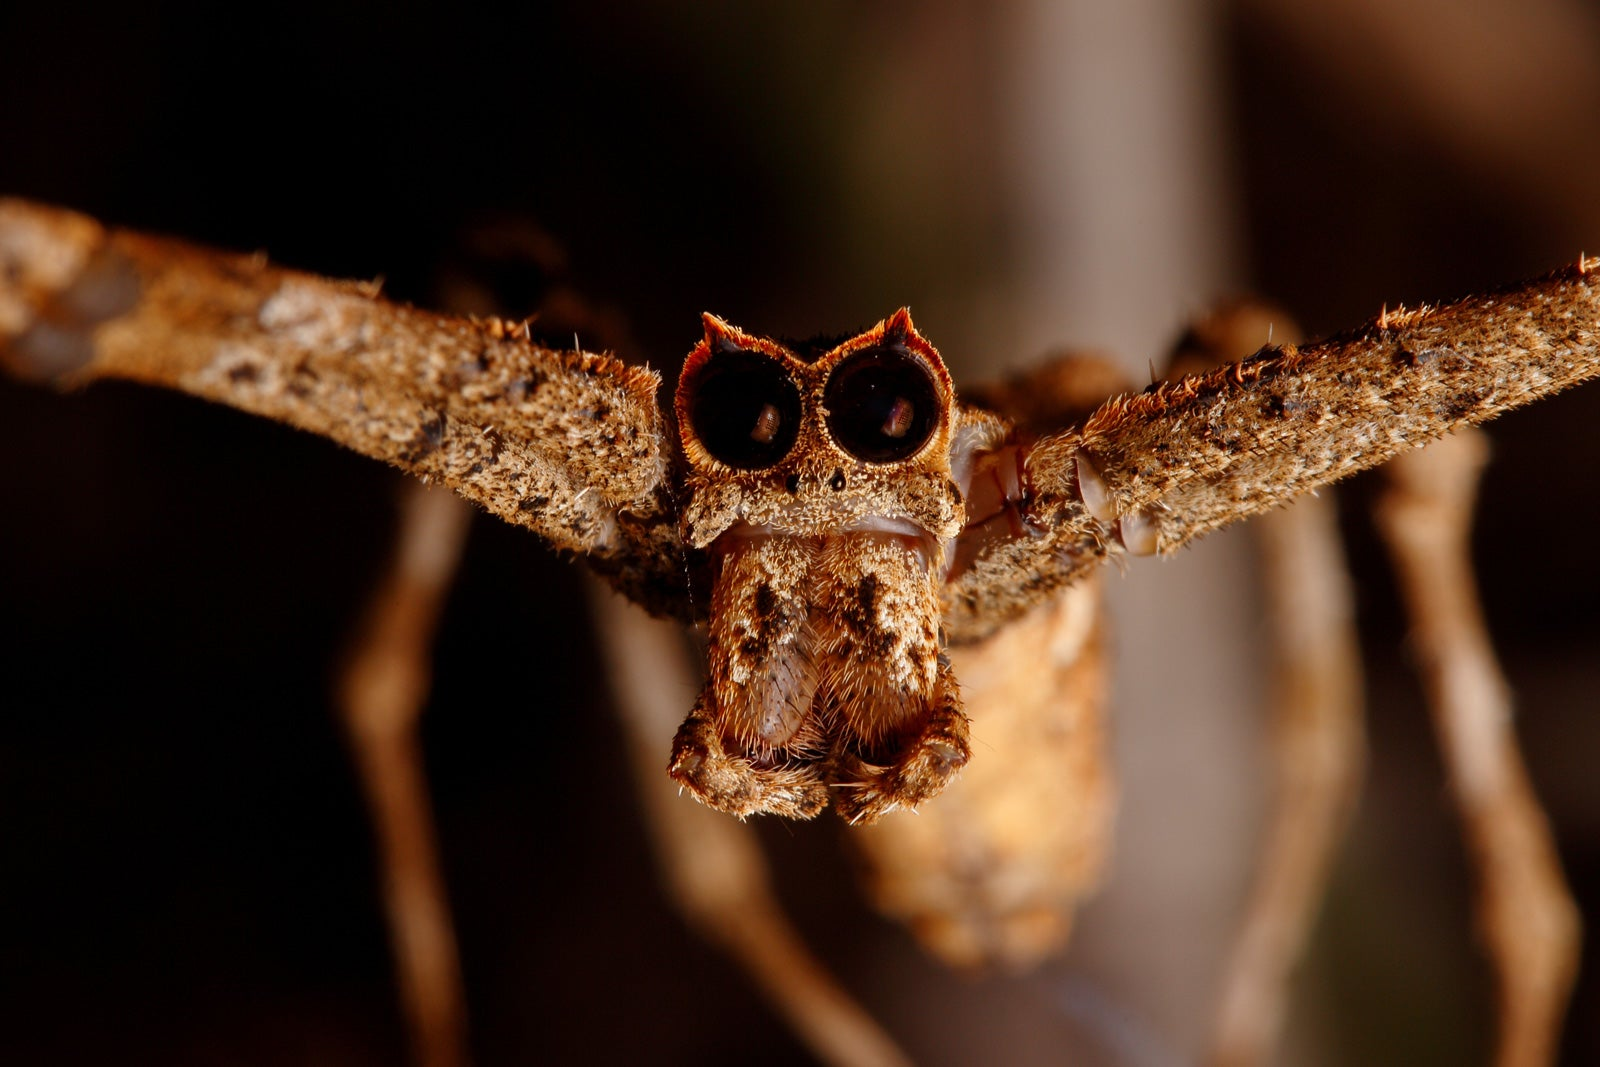 A close up photograph showing the face of the ogre-faced spider, with two huge black eyes. It's body is light brown in colour.